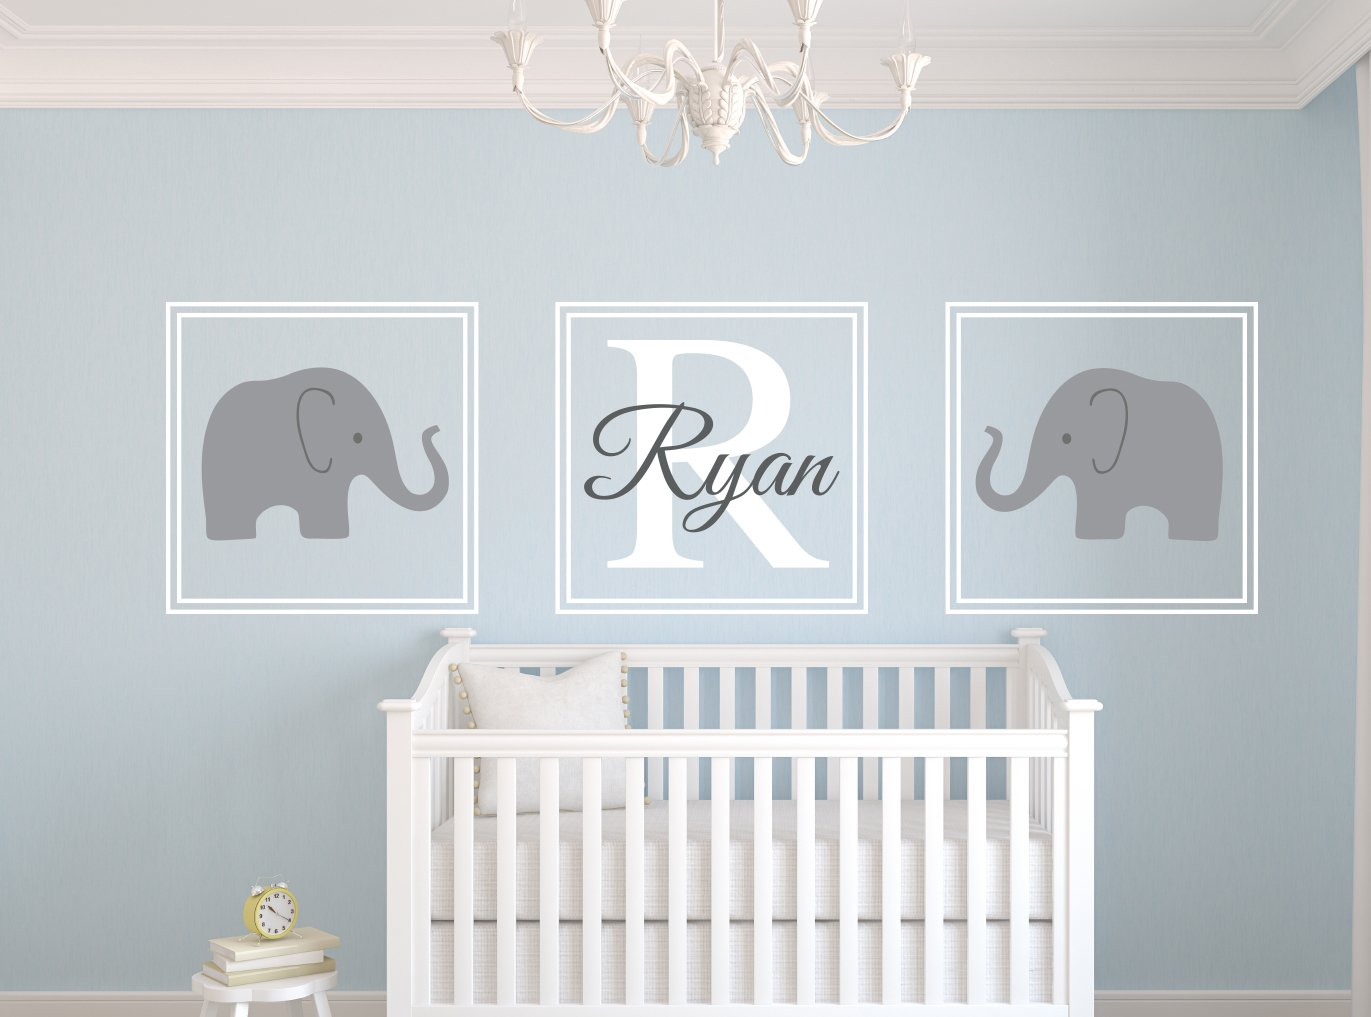 Amazon elephant name wall decal set nursery wall decor home amazon elephant name wall decal set nursery wall decor home kitchen amipublicfo Choice Image